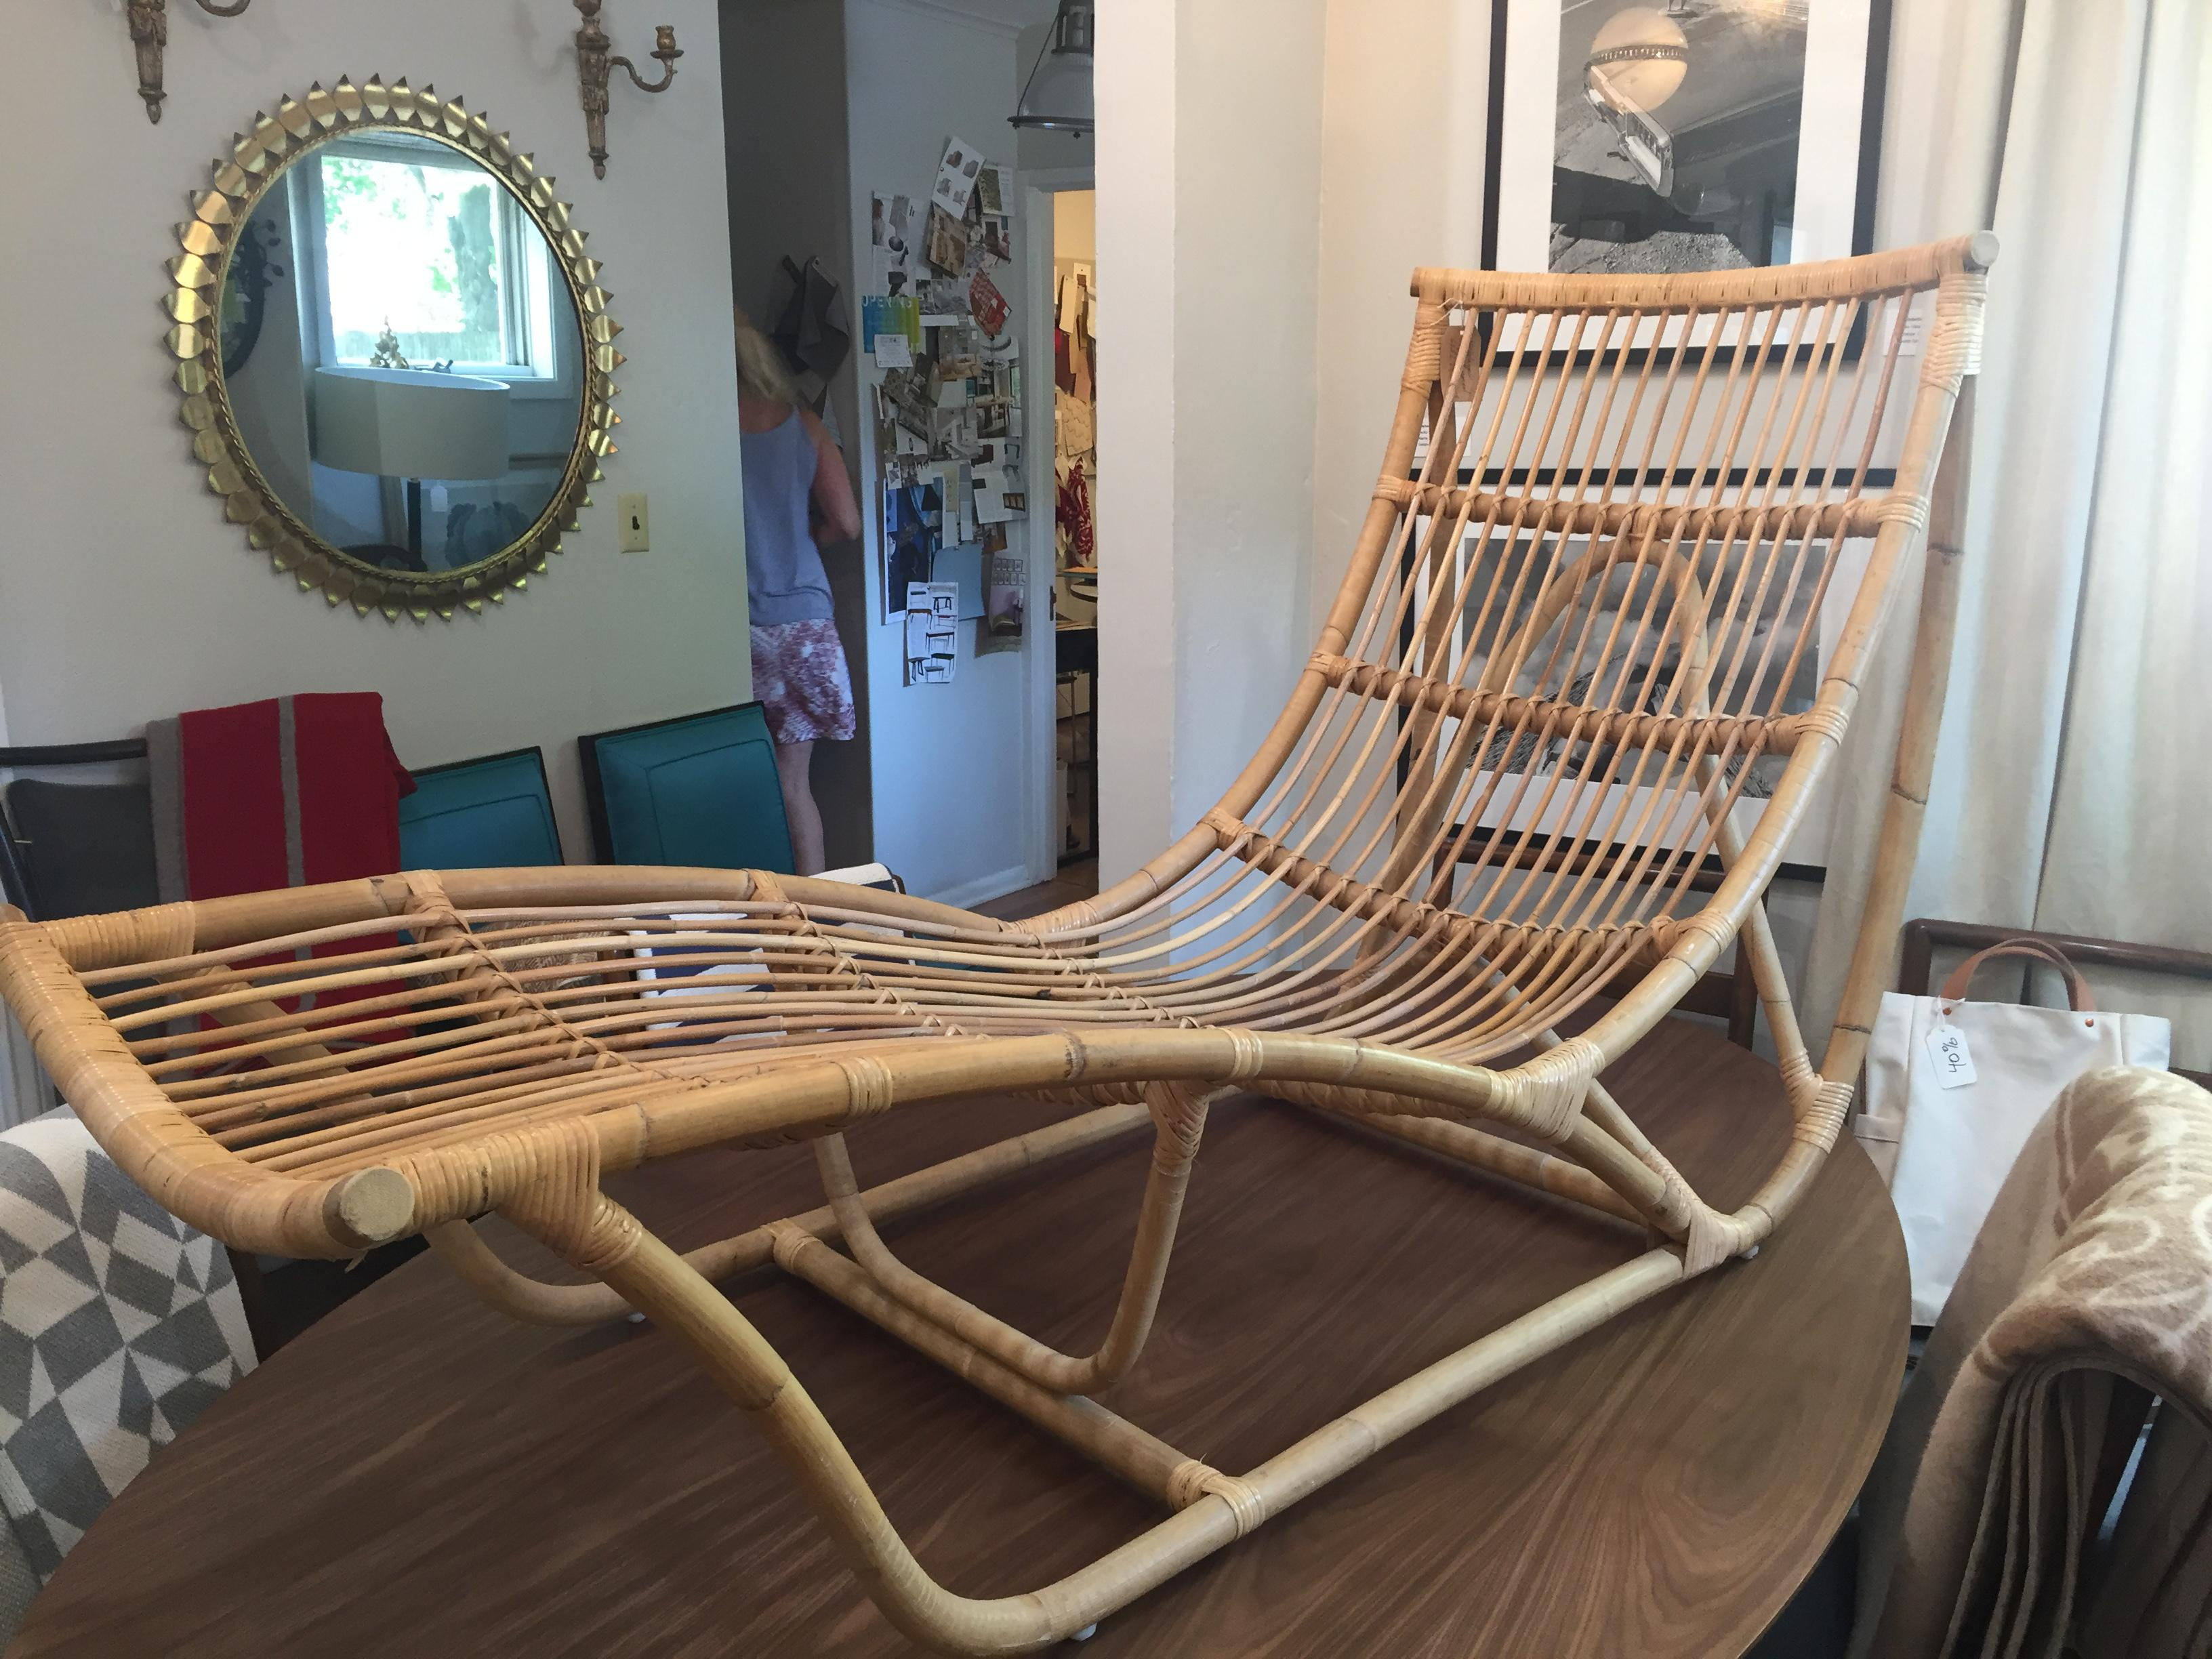 Franco Albini Bamboo Chaise Longue - Image 2 of 6  sc 1 st  Chairish : bamboo chaise lounge - Sectionals, Sofas & Couches